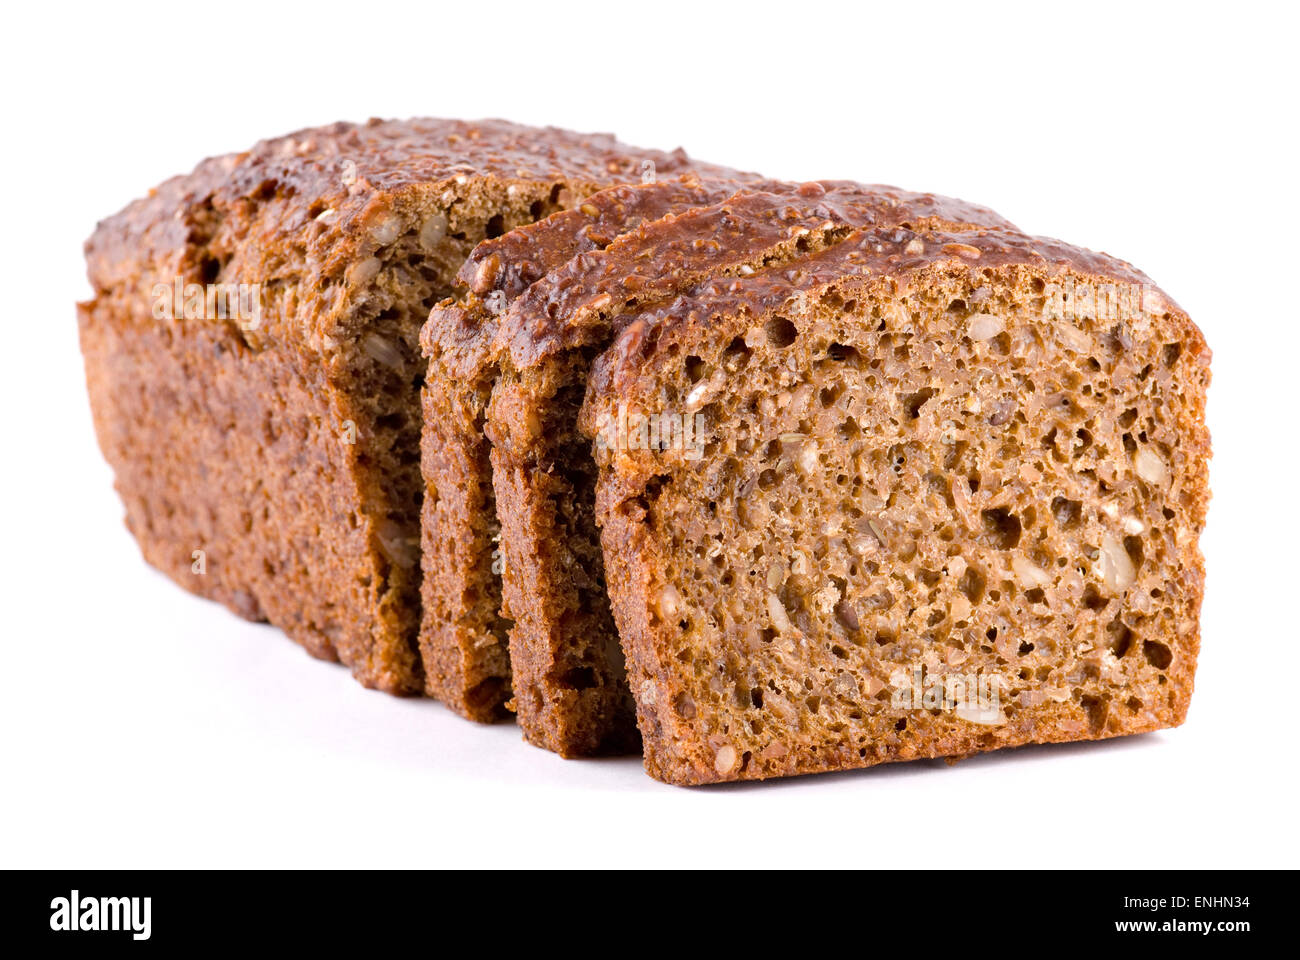 Sliced rye bread close up. - Stock Image